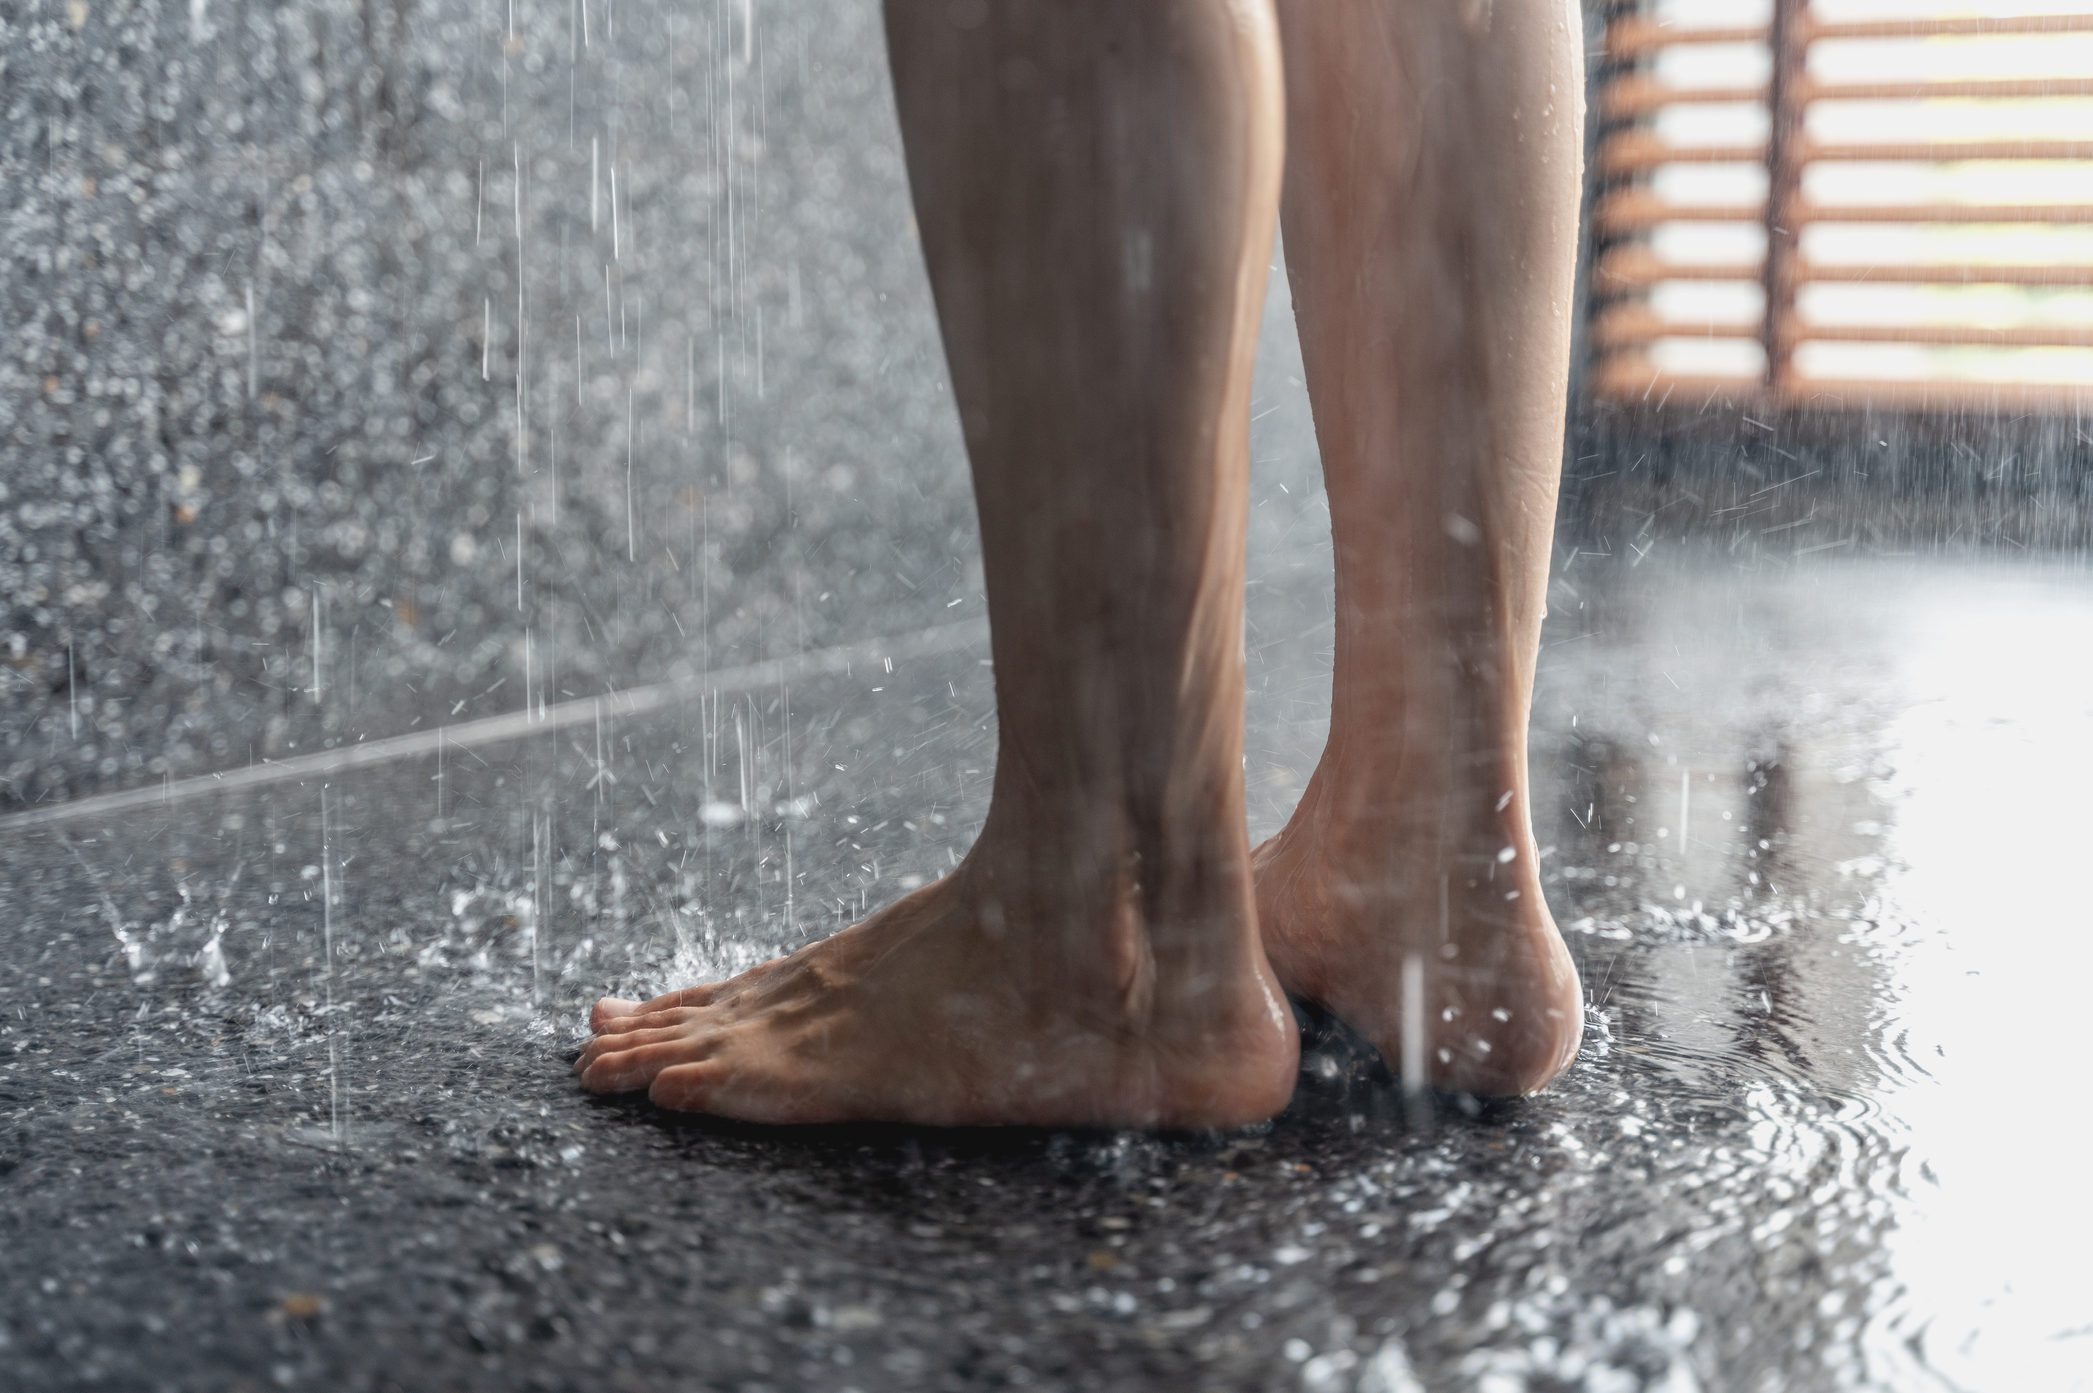 Legs and feet of someone standing in shower